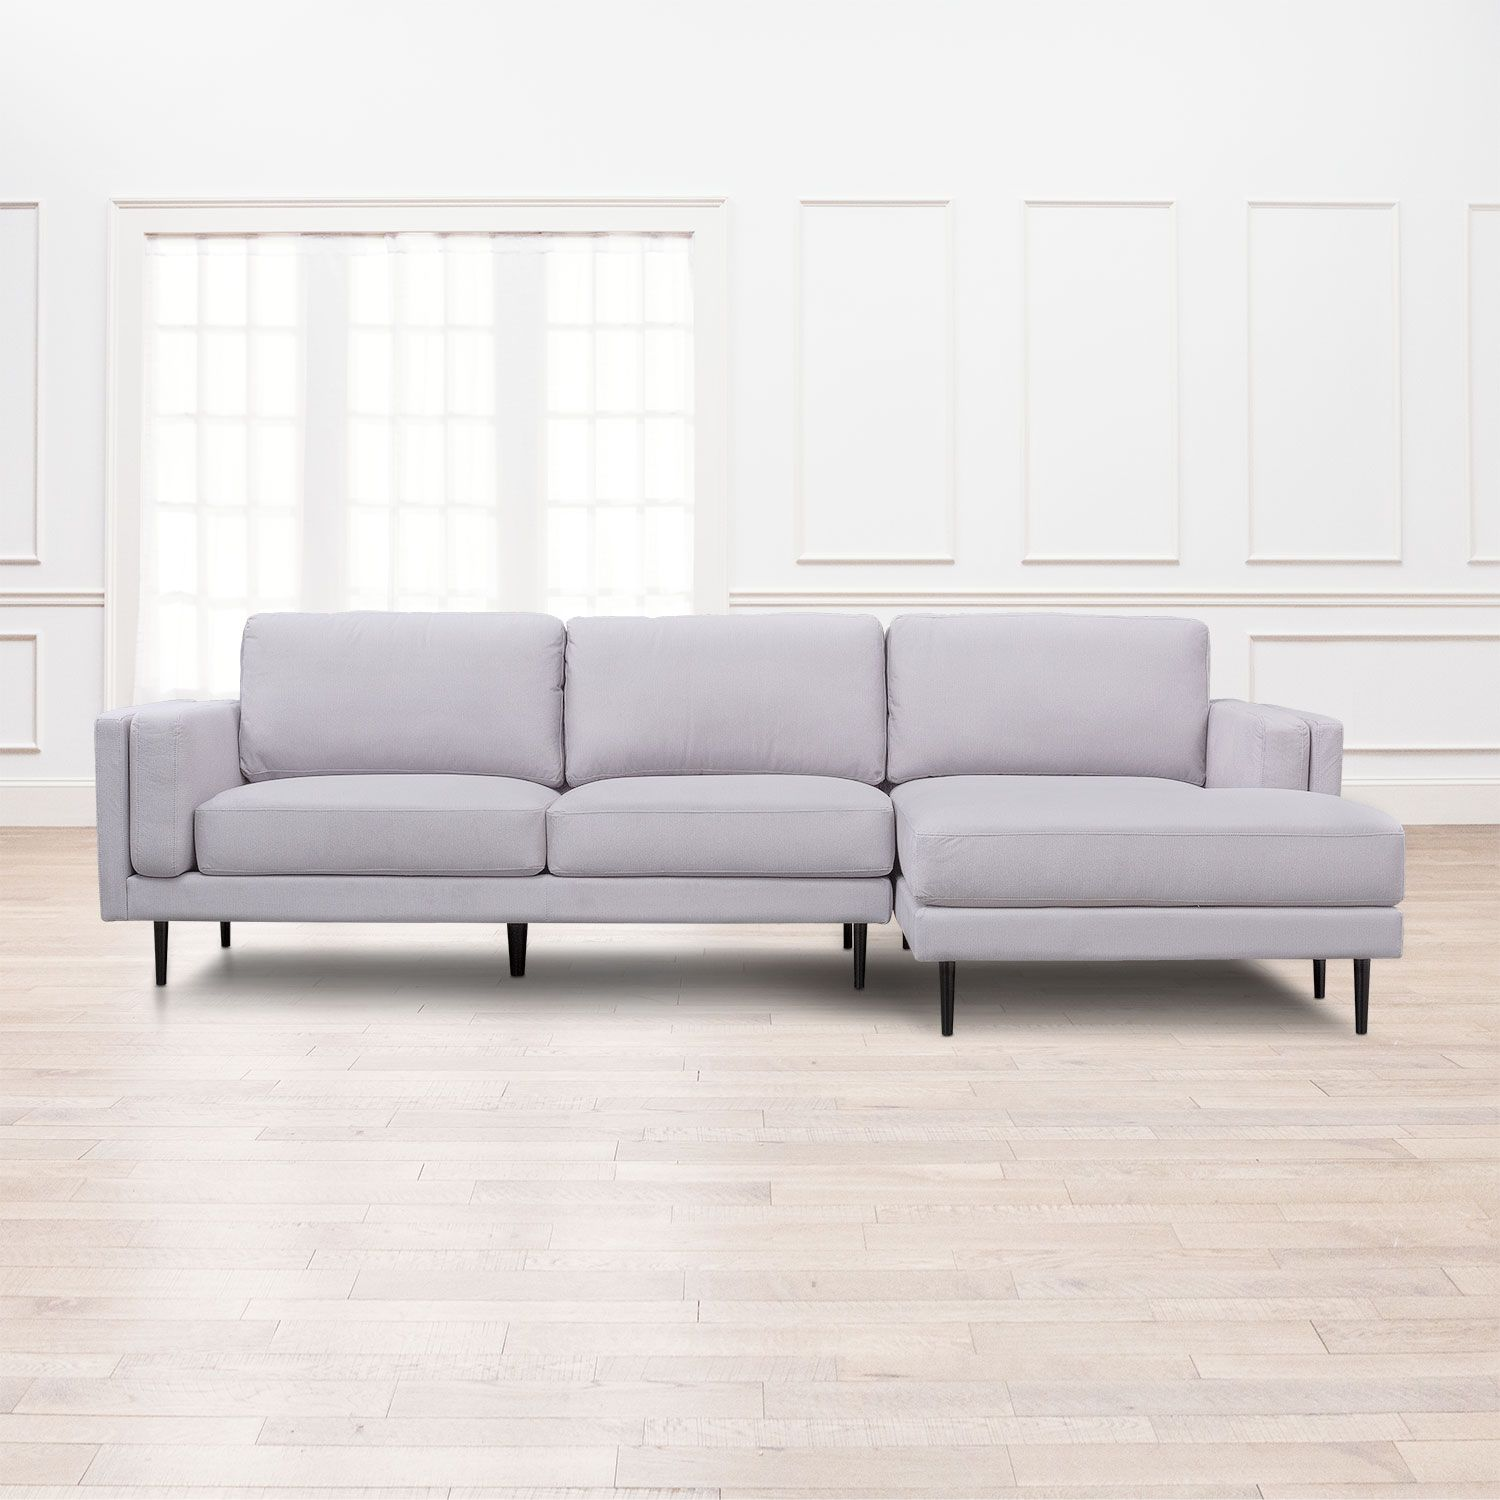 Best West End 2 Piece Sectional With Chaise Value City 400 x 300